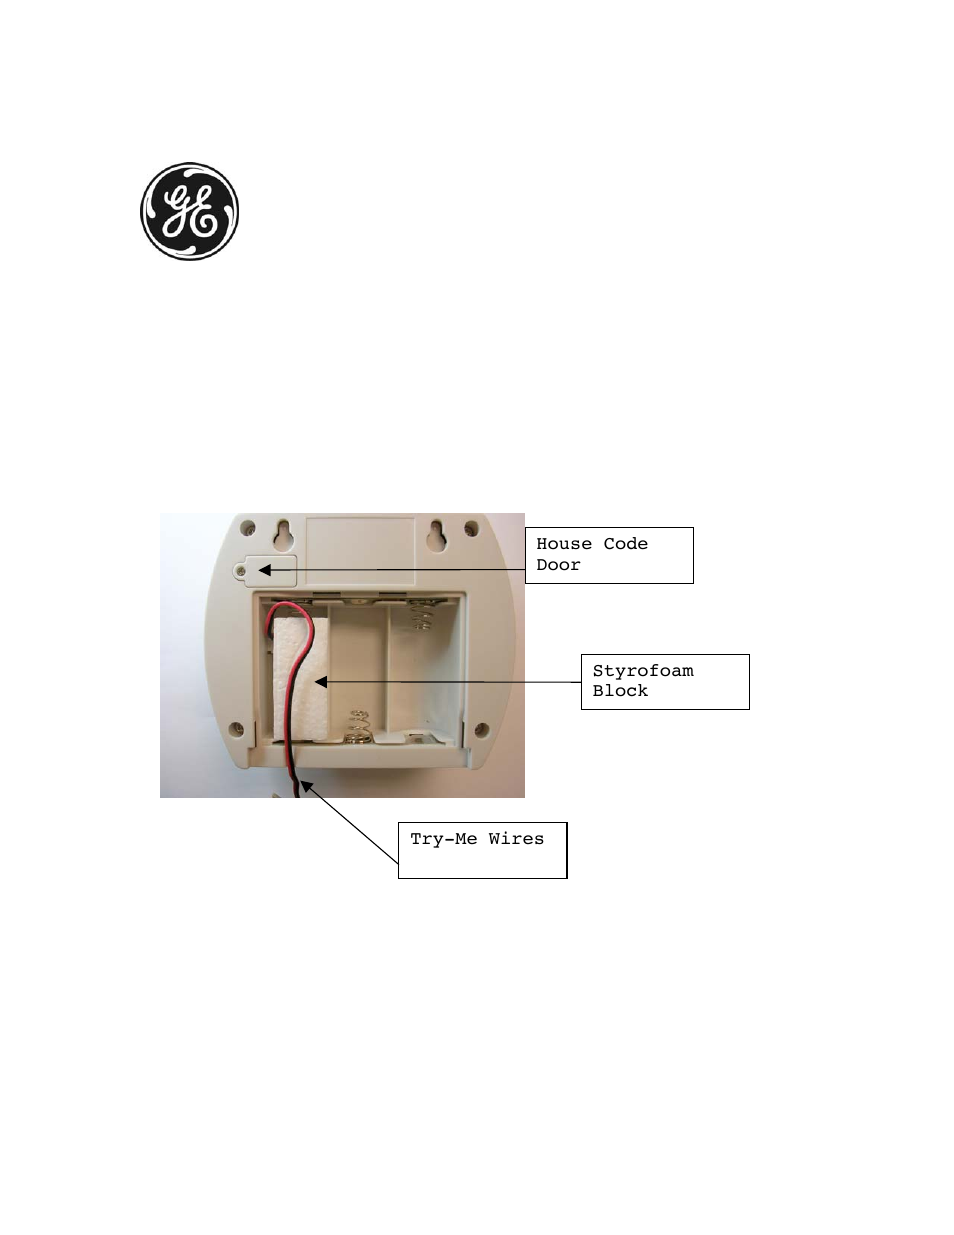 Ge Wireless Door Chime Instruction Manual Wire Center E36techcom O View Topic Diye36 325i Automatic To 19208 User 9 Pages Also For Seven Rh Manualsdir Com